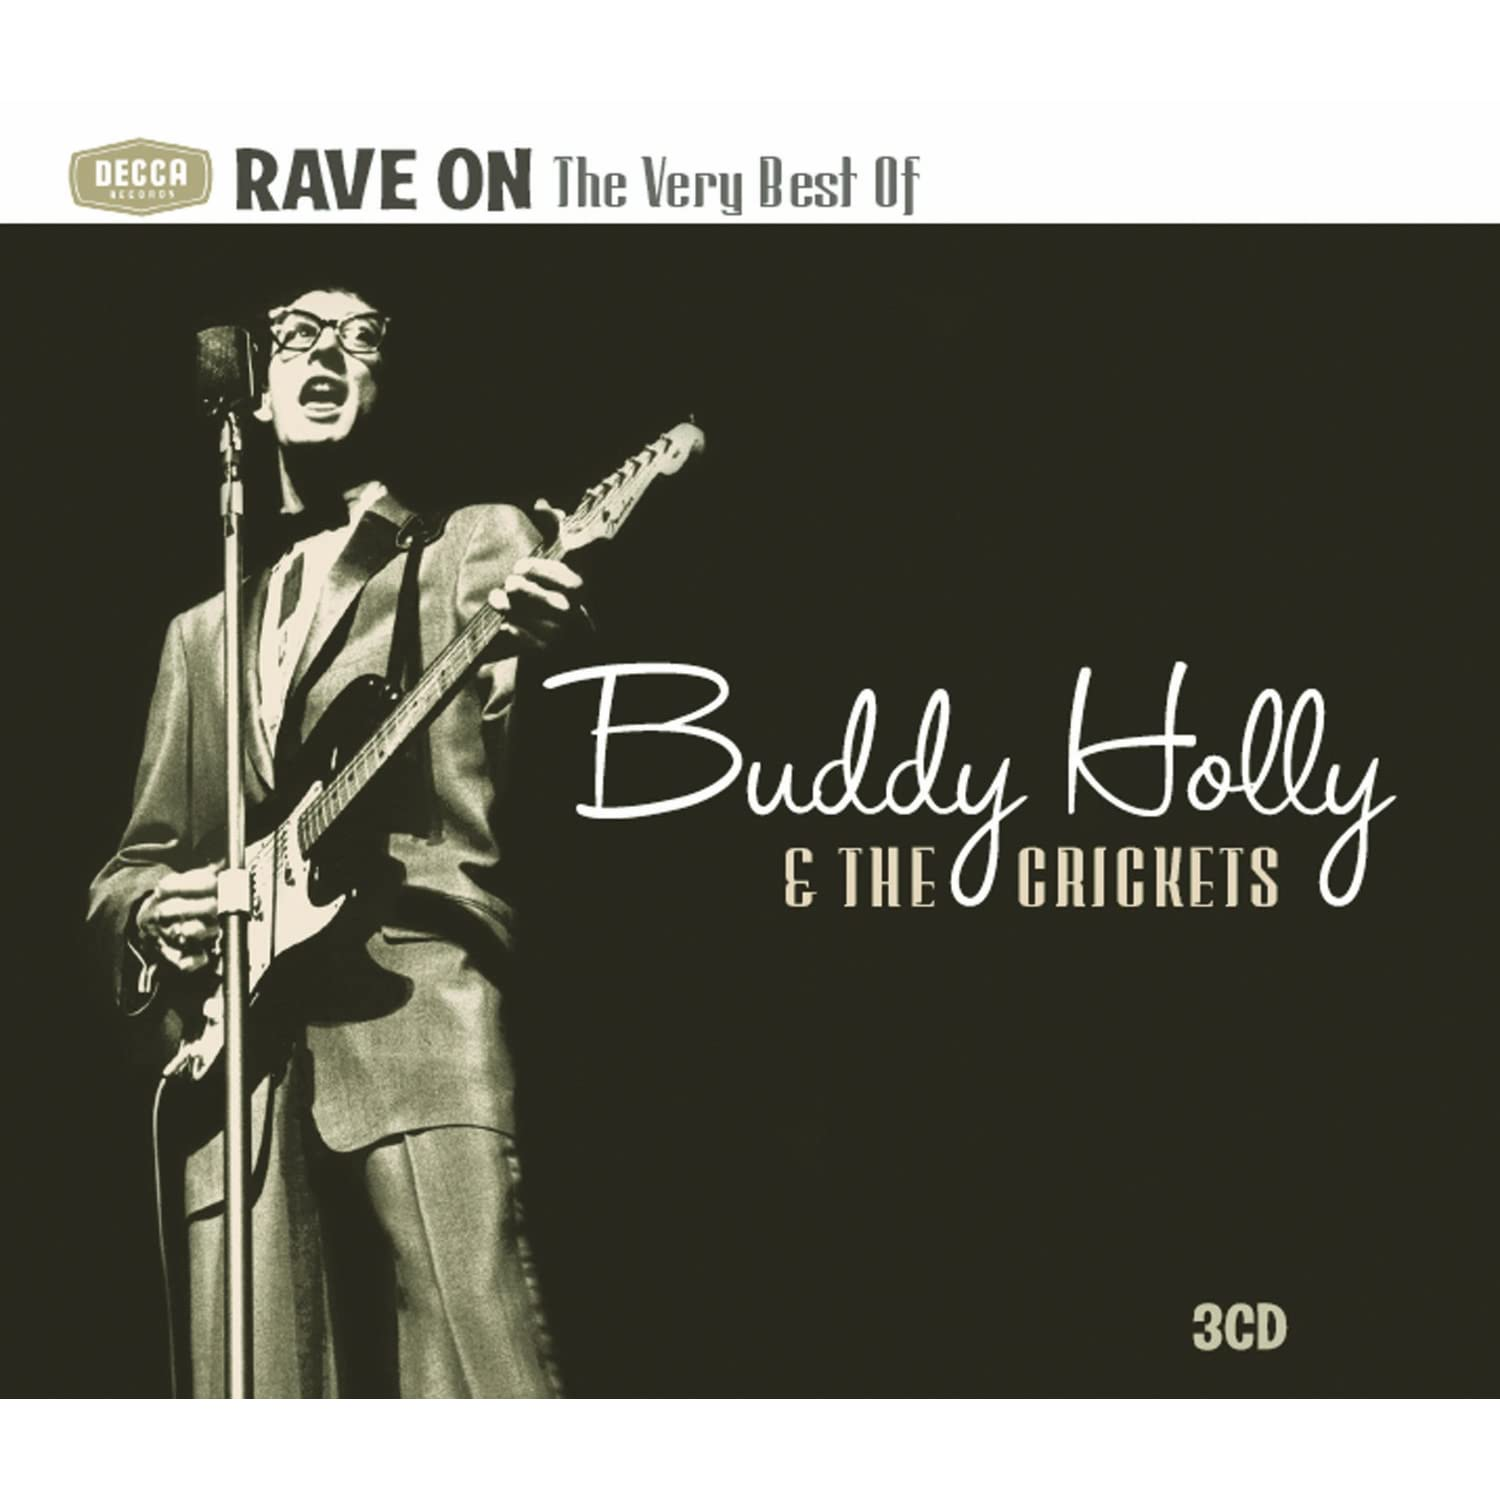 Rave On : The Very Best Of Buddy Holly & The Crickets